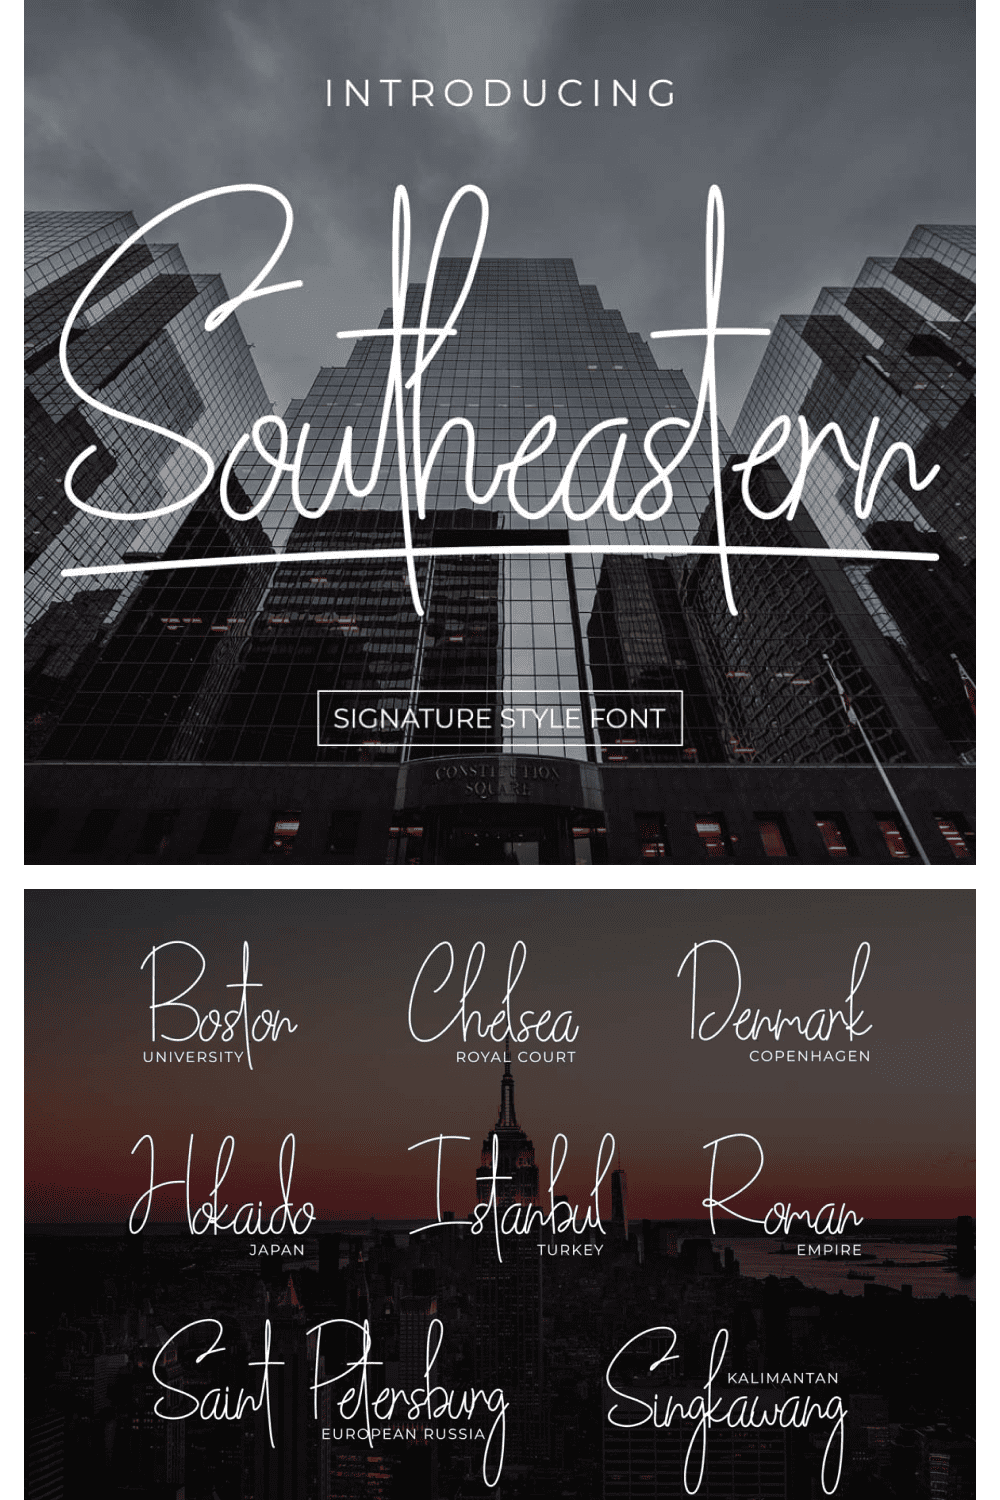 Southeastern is the prime released font, it is handwritten signature style font which is good for using branding, invitation card, business card, product packaging, stationery, social media post, watermark.